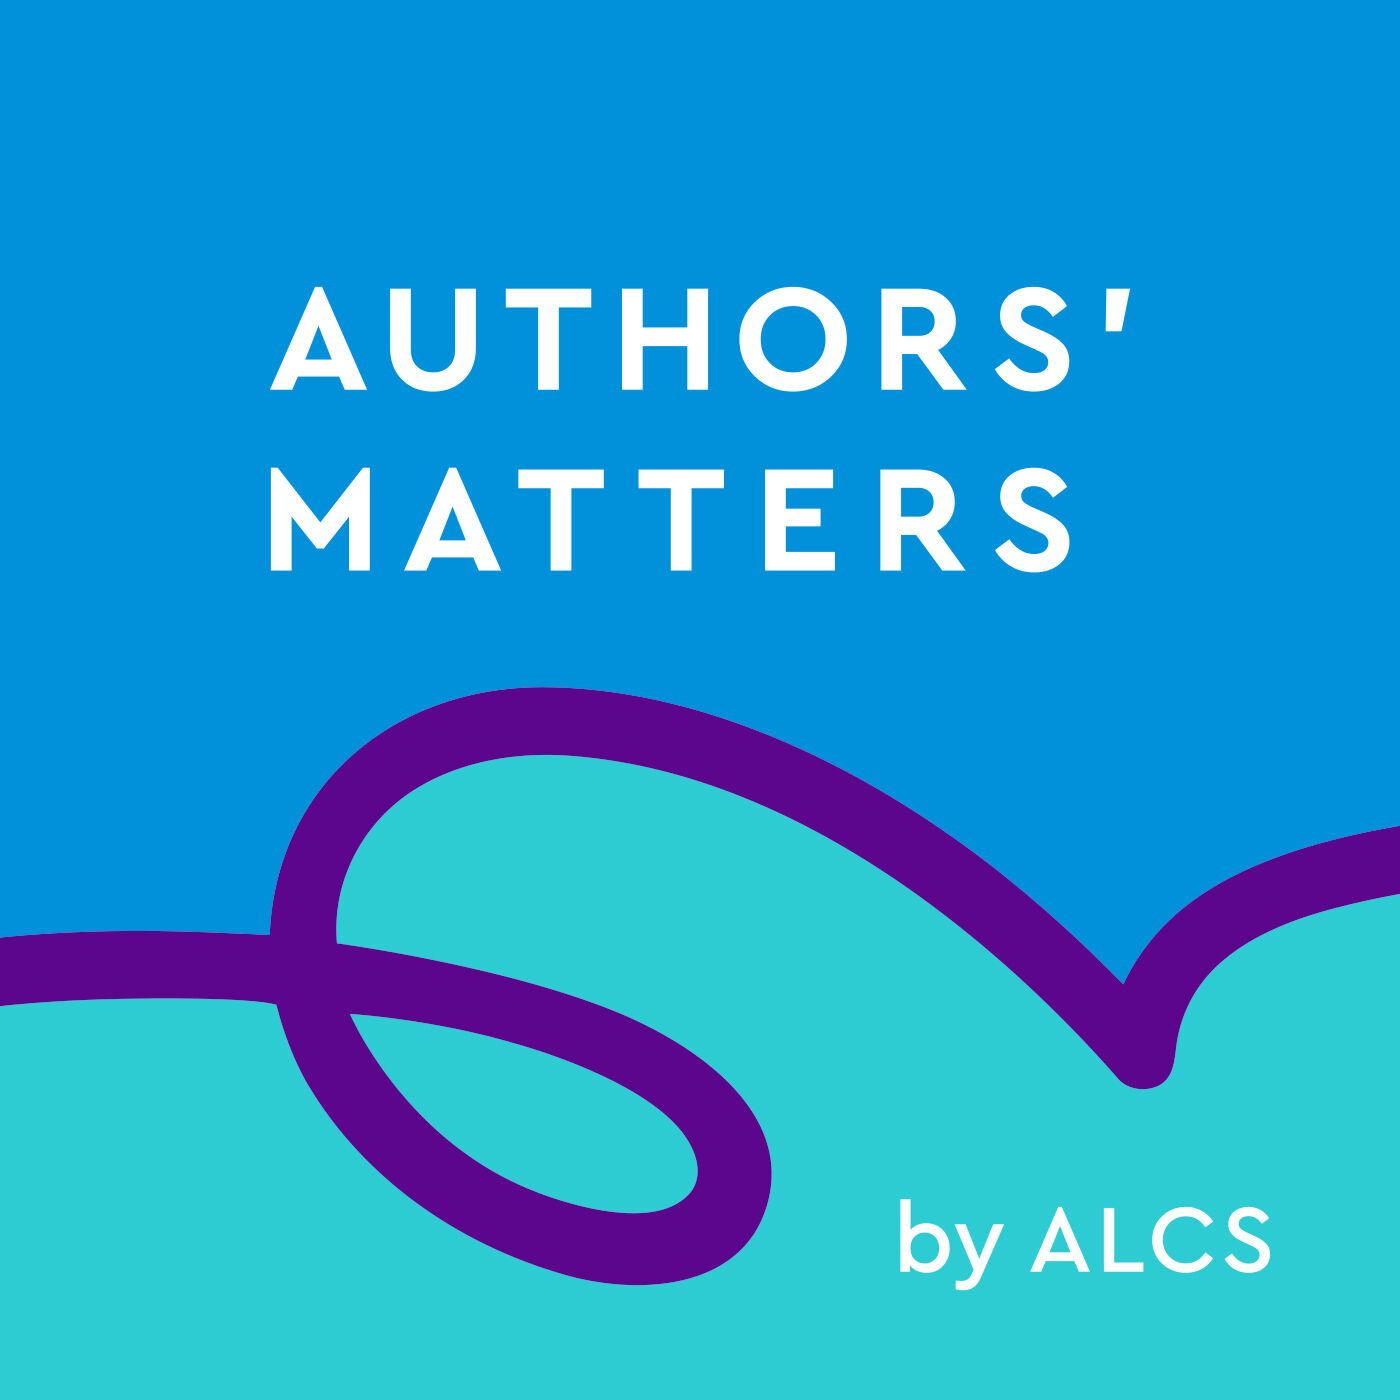 Episode 4: Sara Collins and advocacy at ALCS